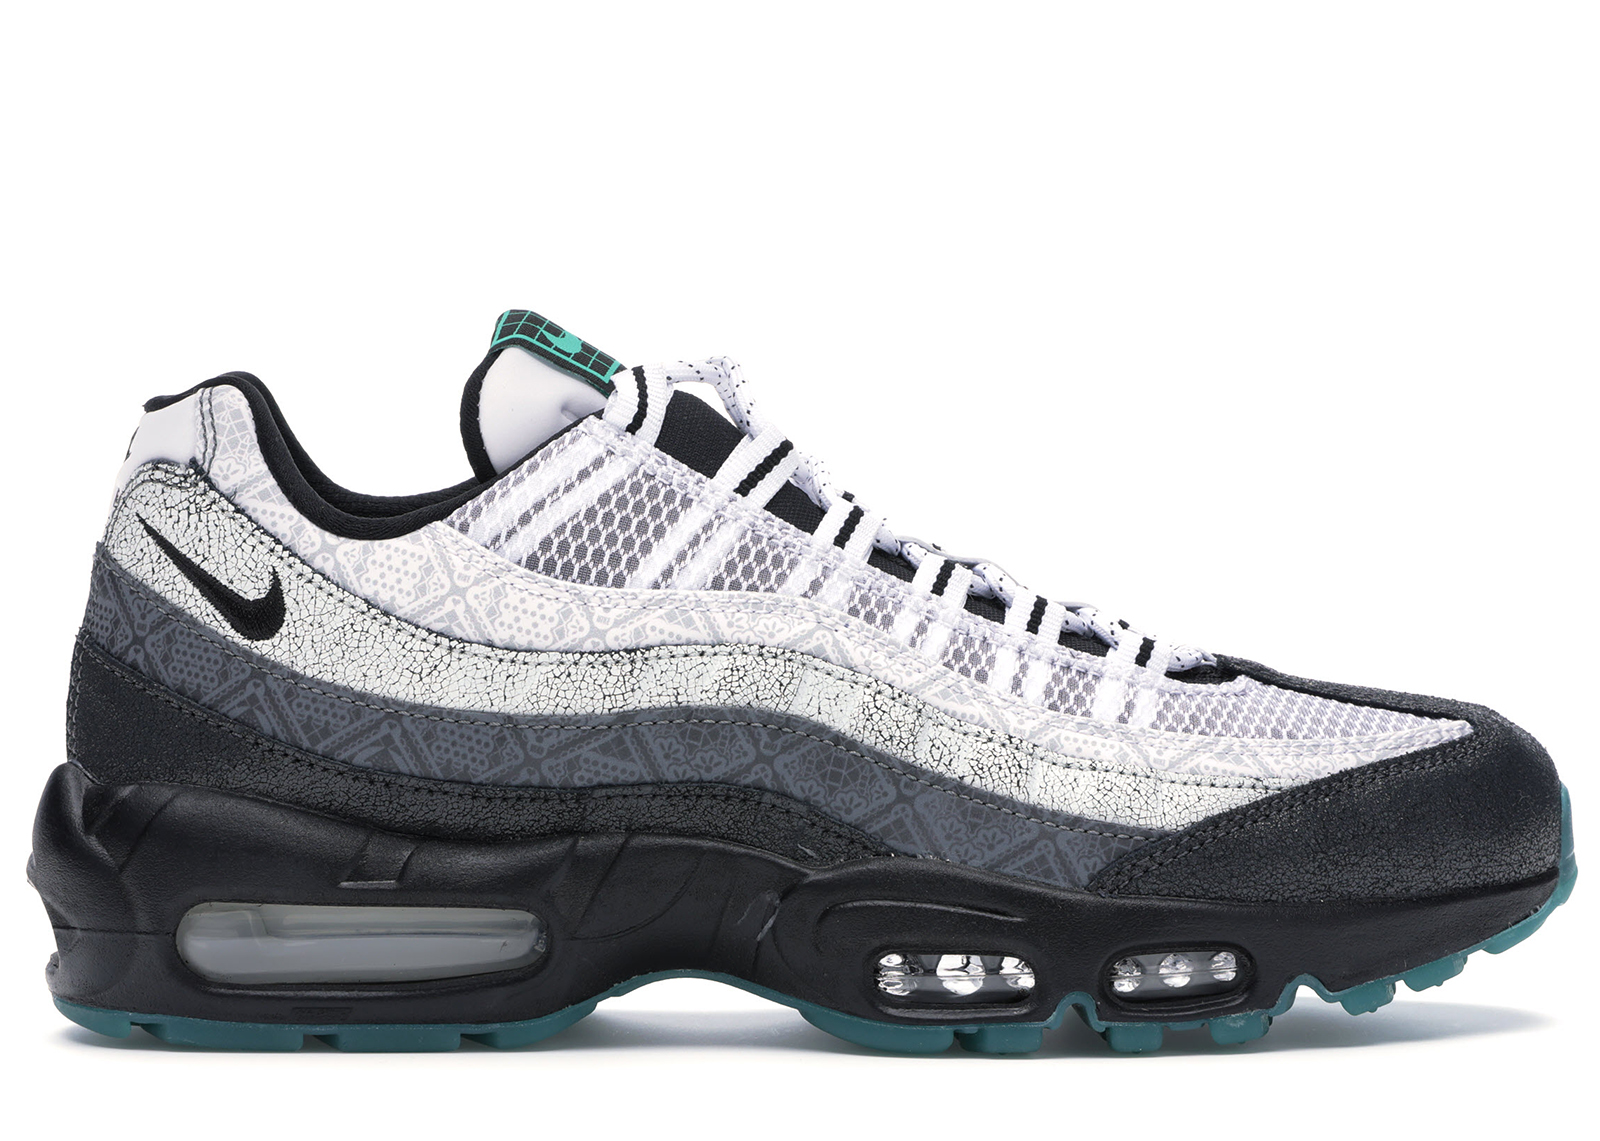 Nike Air Max 95 Day of the Dead (2019)